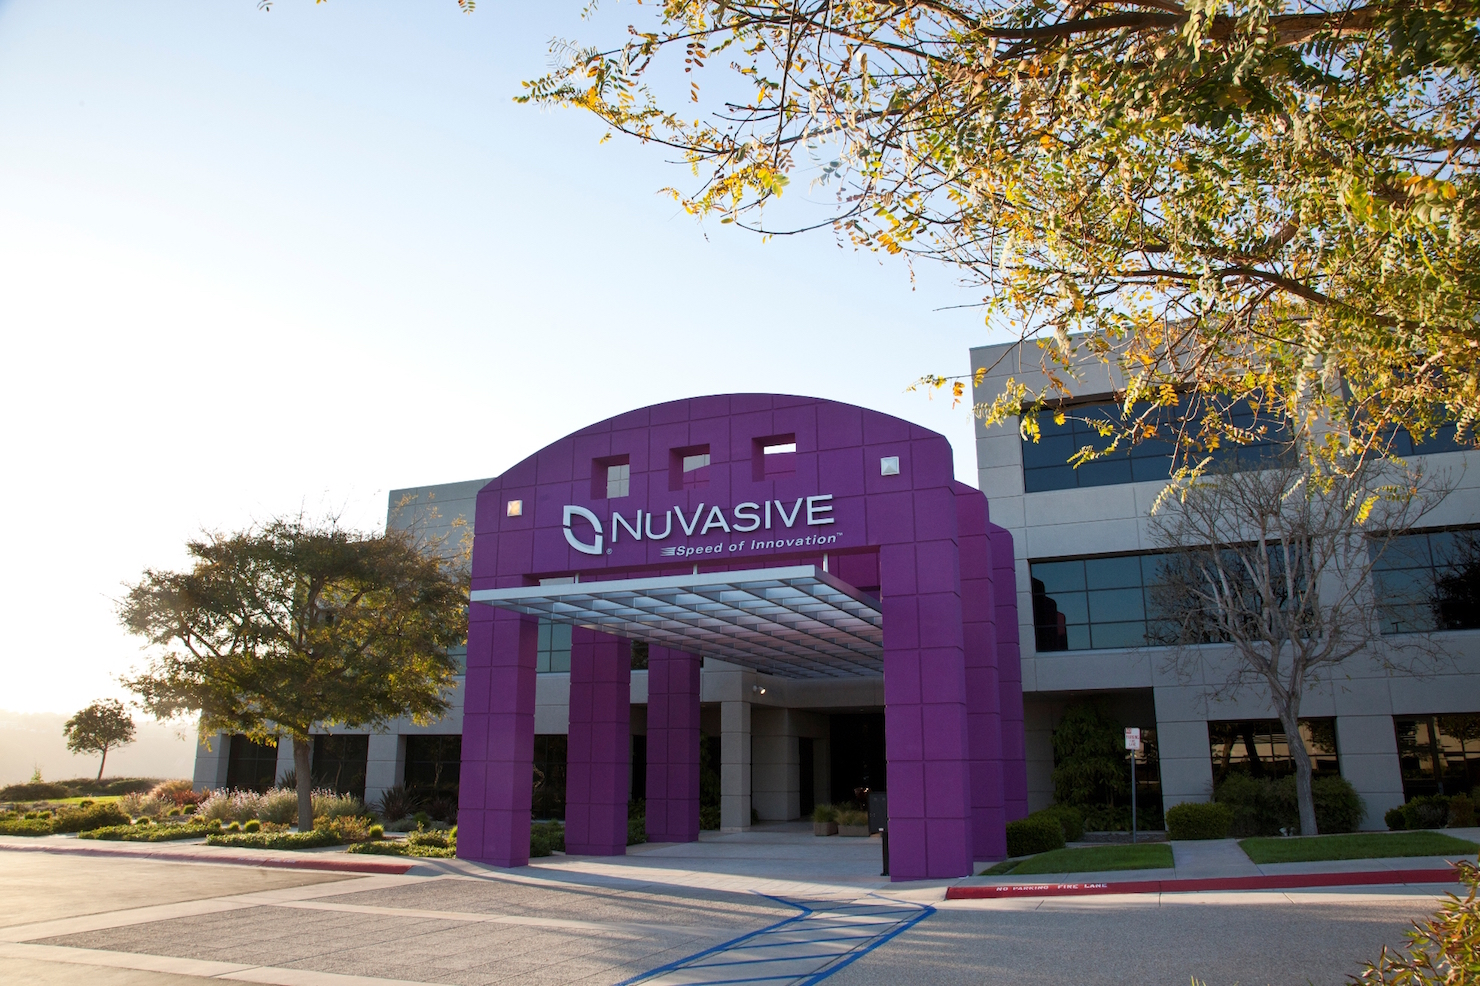 Views of the front of NuVasive, Inc. headquarters in San Diego, CA.